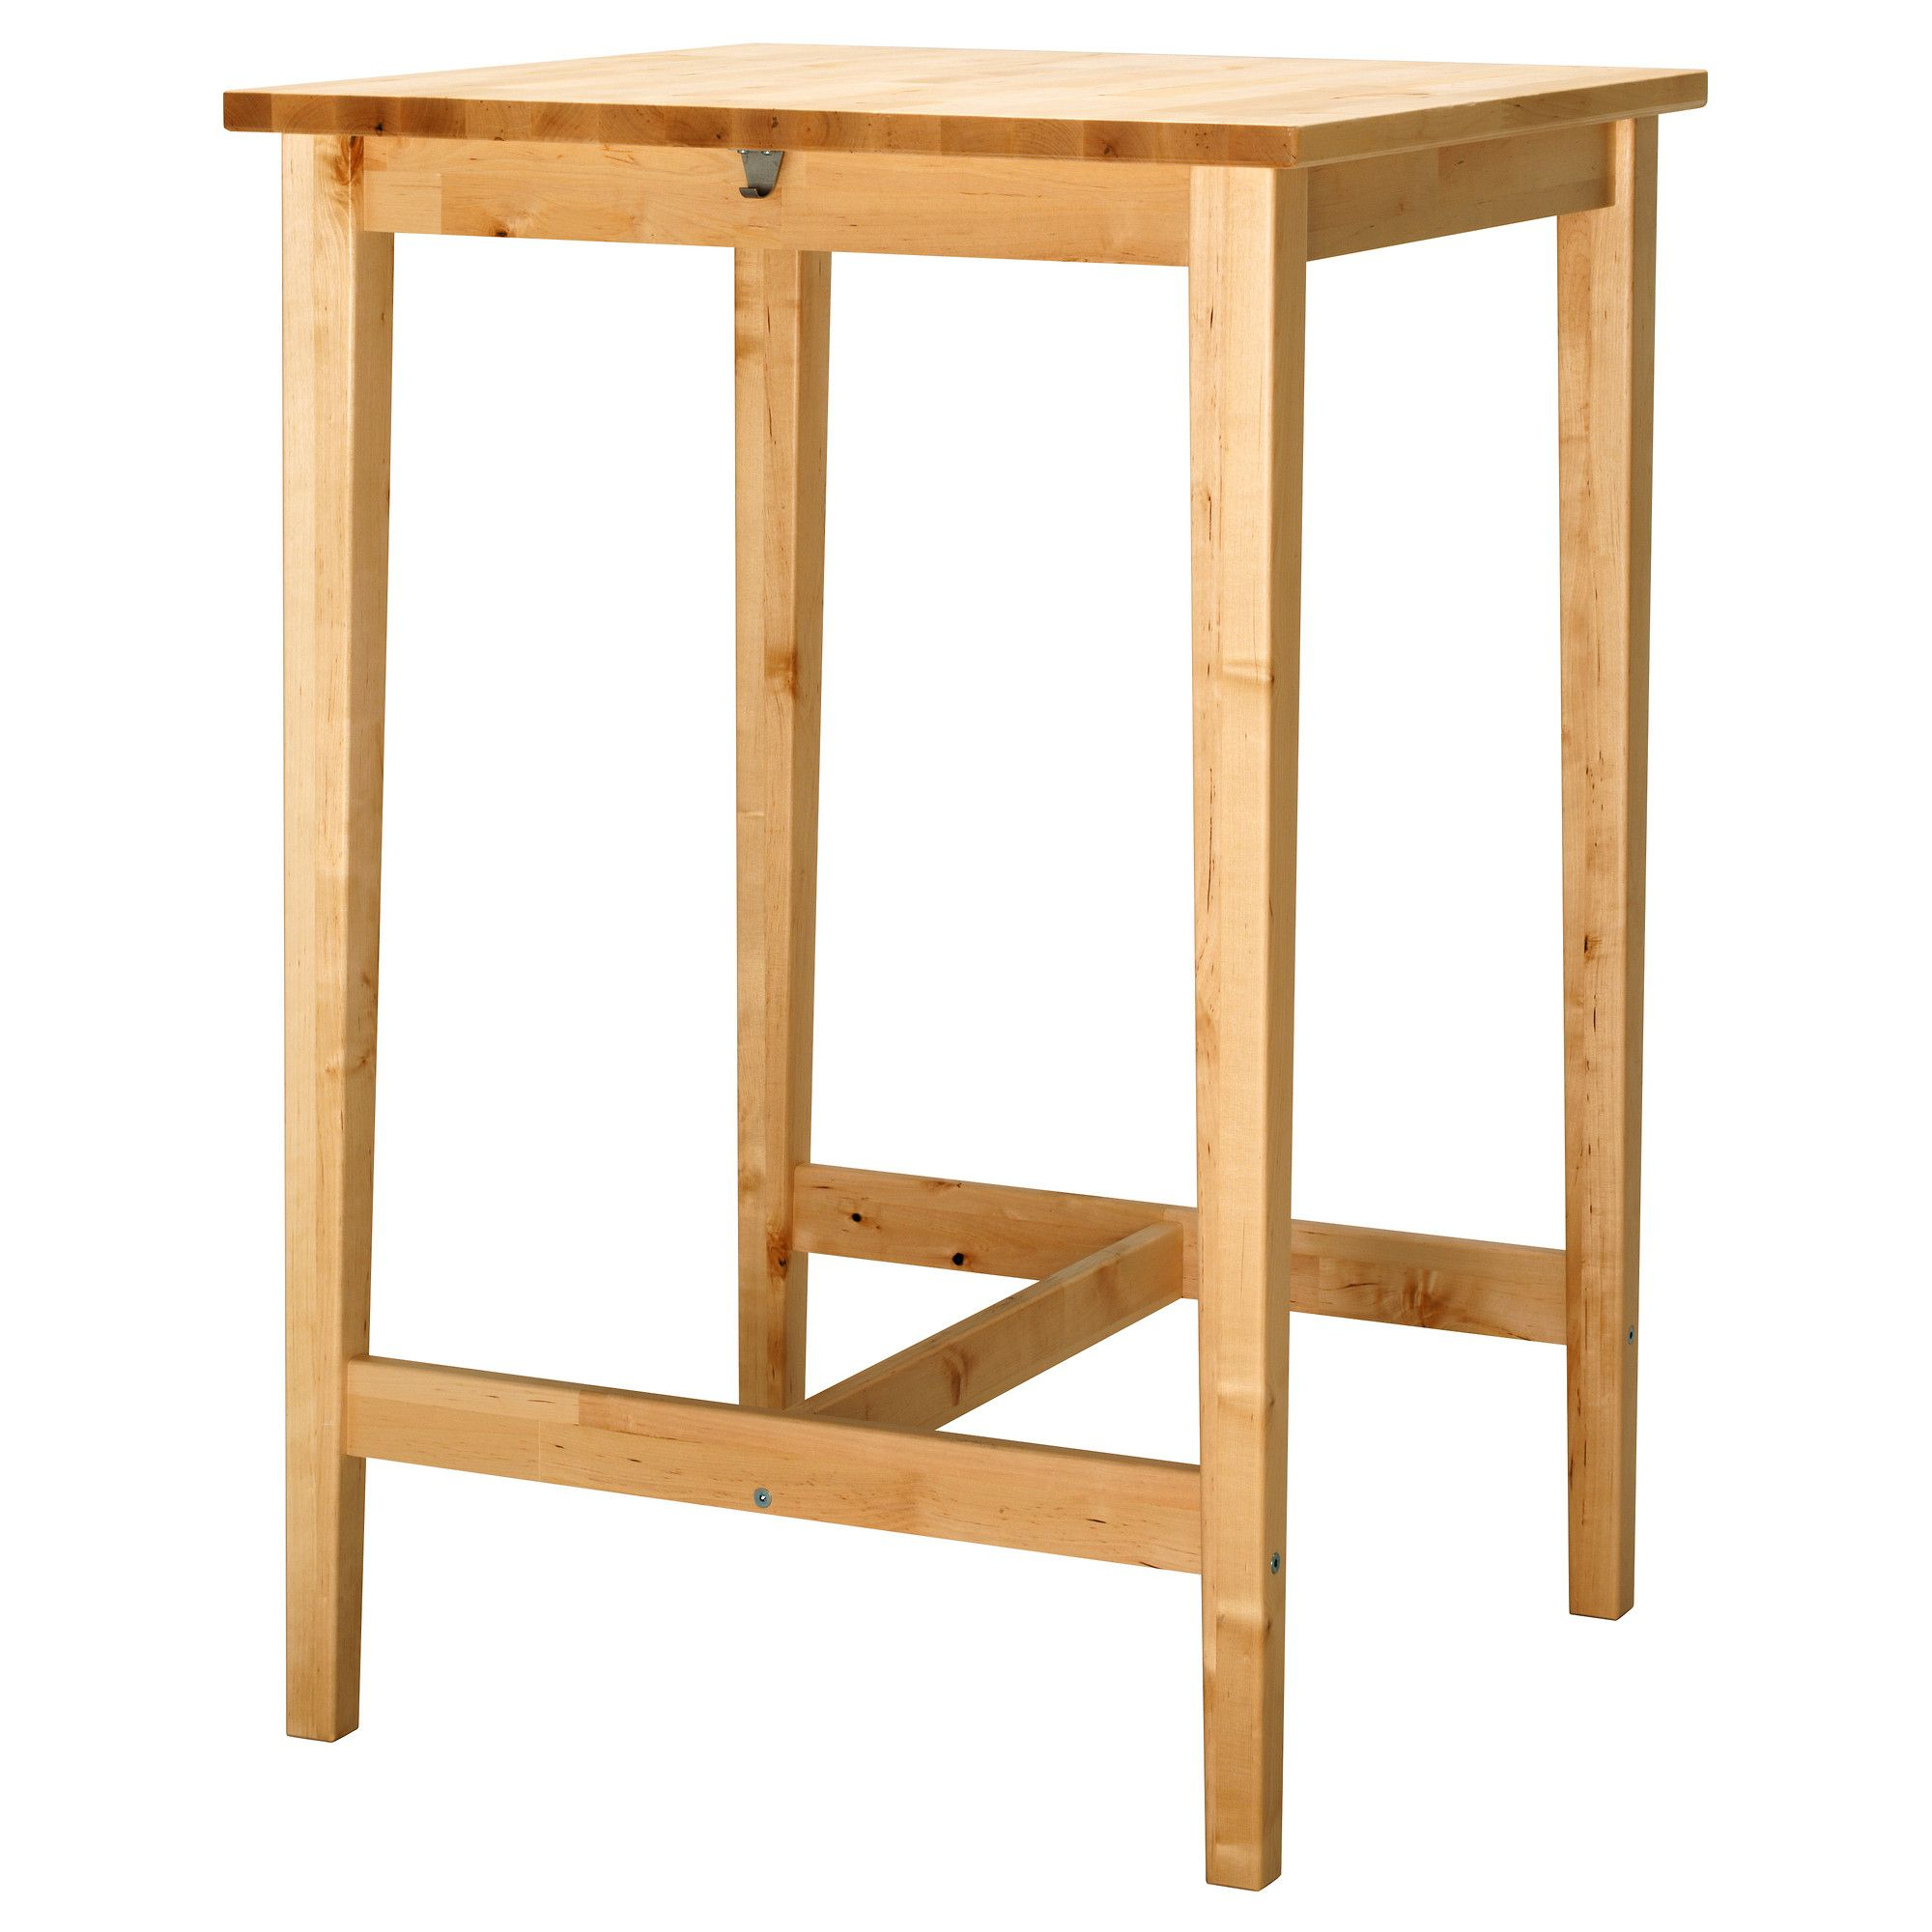 bj rkudden bar table ikea three of these would fit